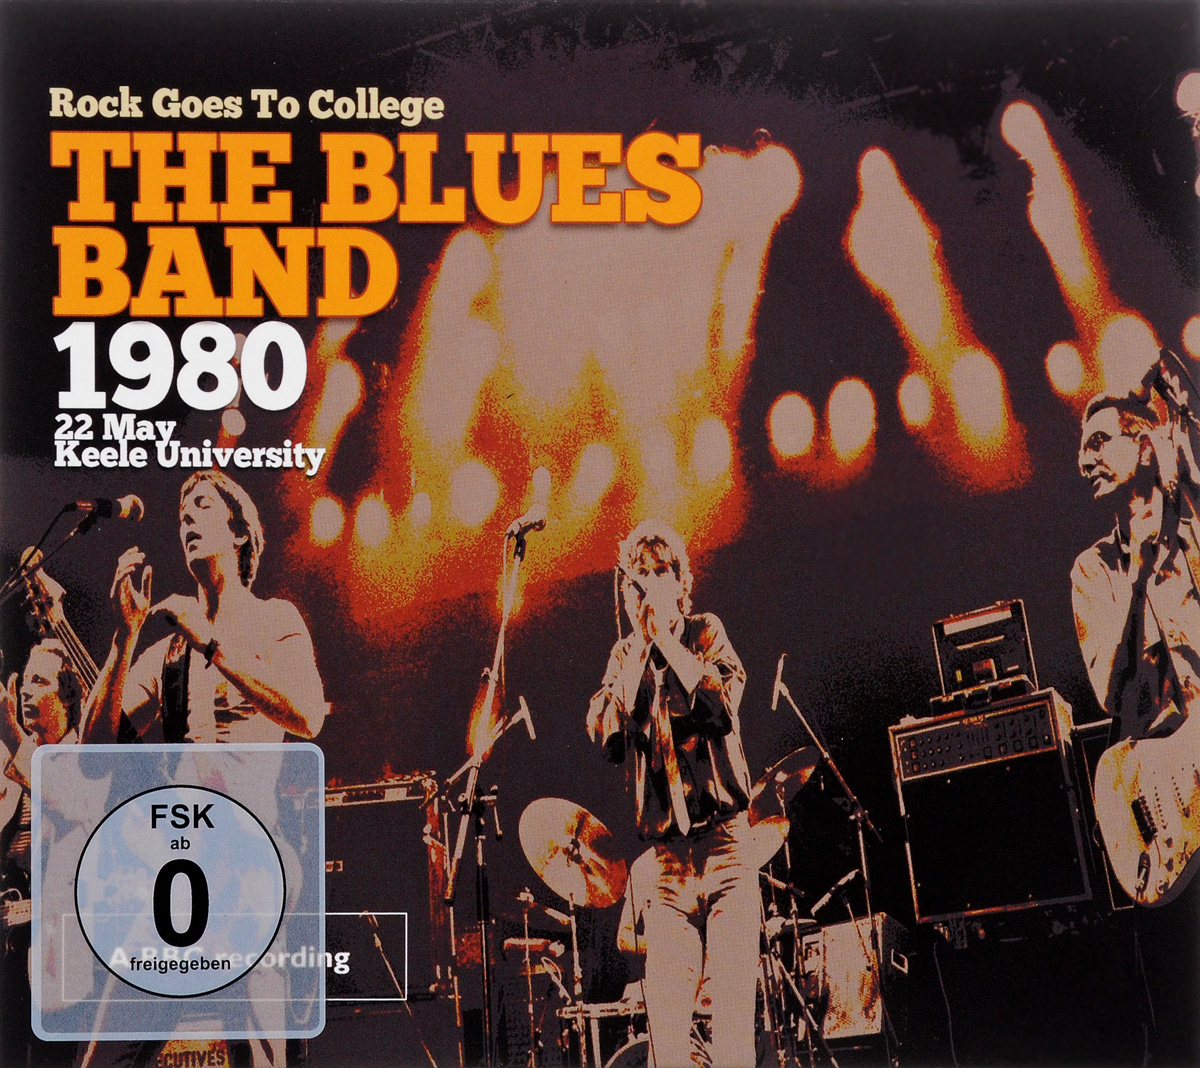 Blues Band The Blues Band. 1980. Rock Goes To College (CD + DVD) xuankun ybr125 jym125 2 jym125 3 rear fork after the rocker boom